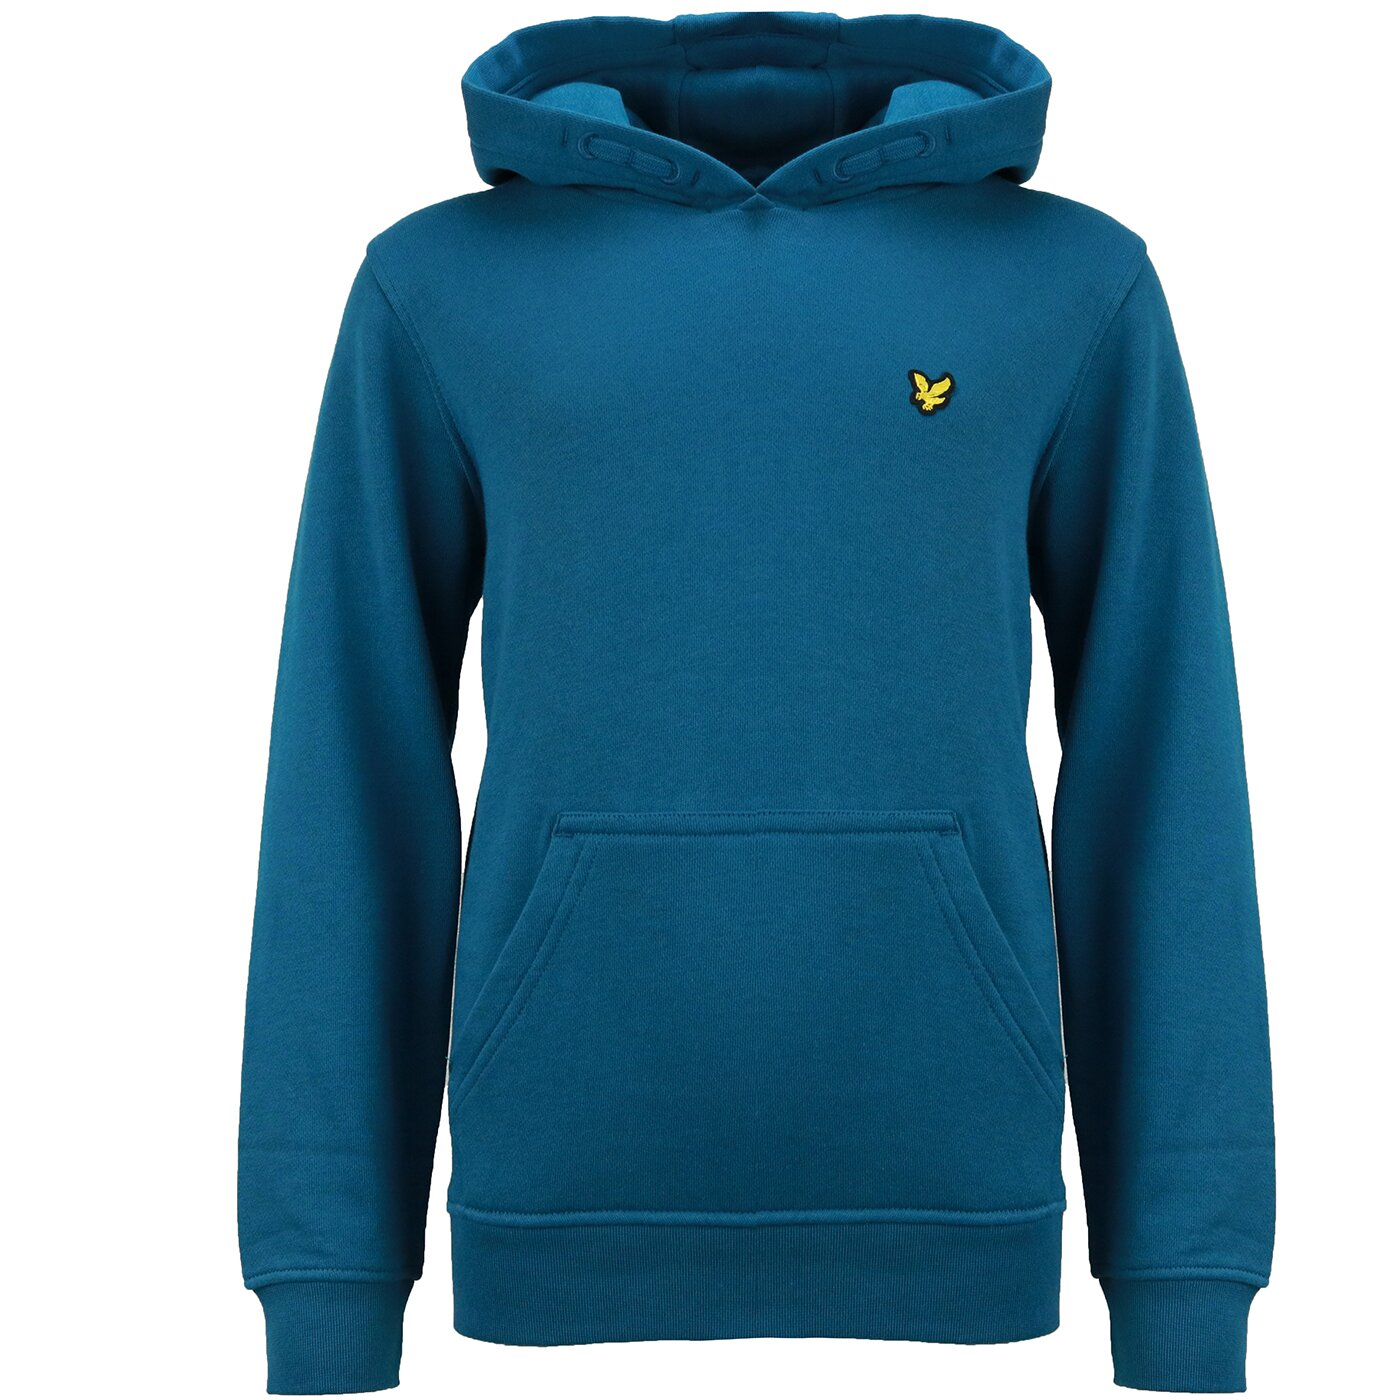 Lyle & Scott hoody ink Blue LSC0475